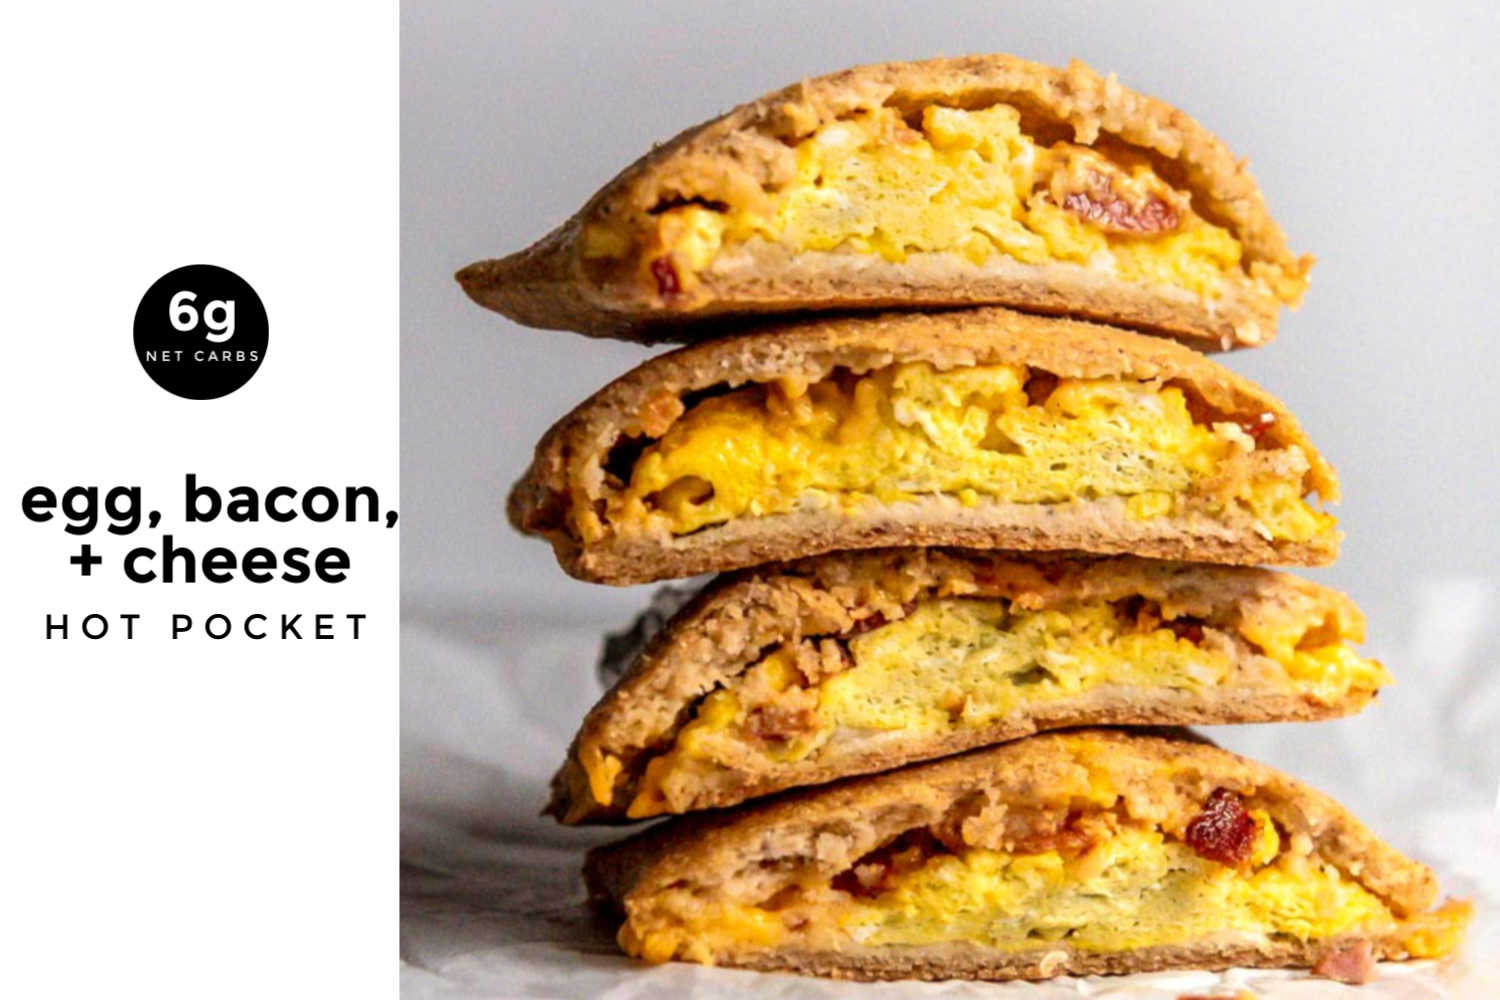 breakfast keto hot pockets with eggs, bacon and cheese